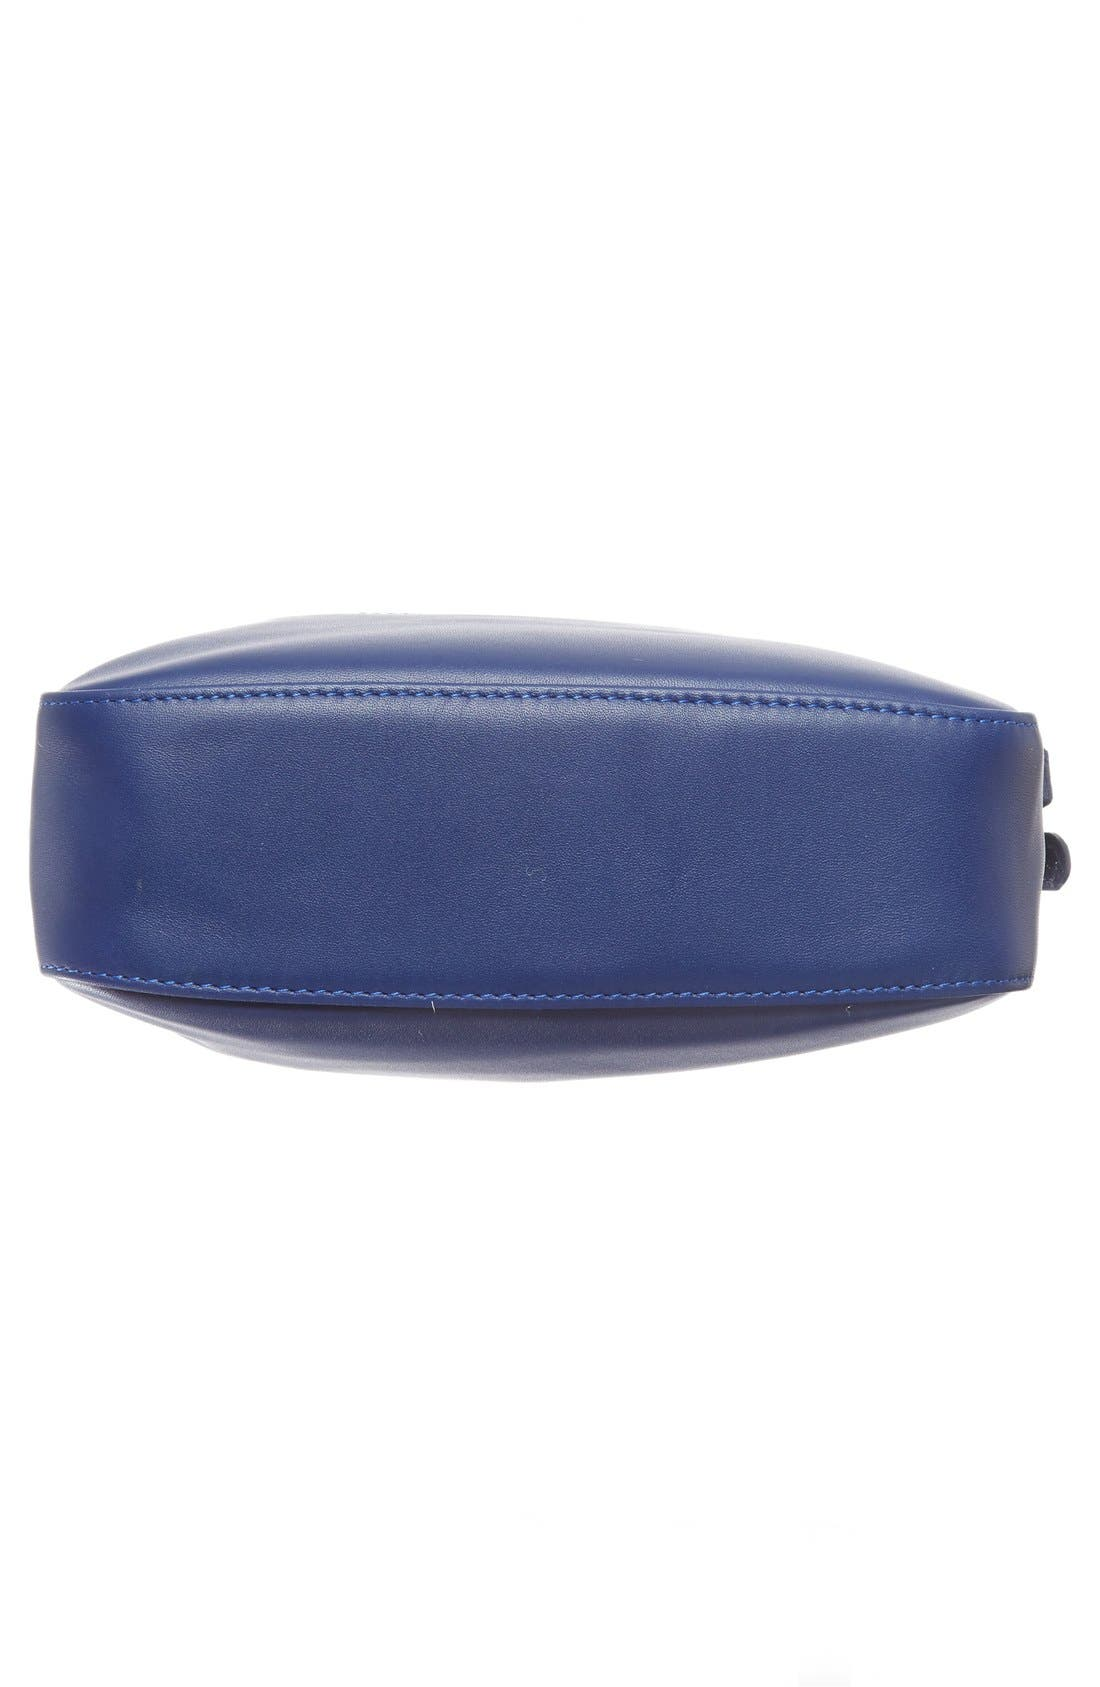 '2.0' Two-Tone Leather Crossbody Bag,                             Alternate thumbnail 5, color,                             Blue/ Navy